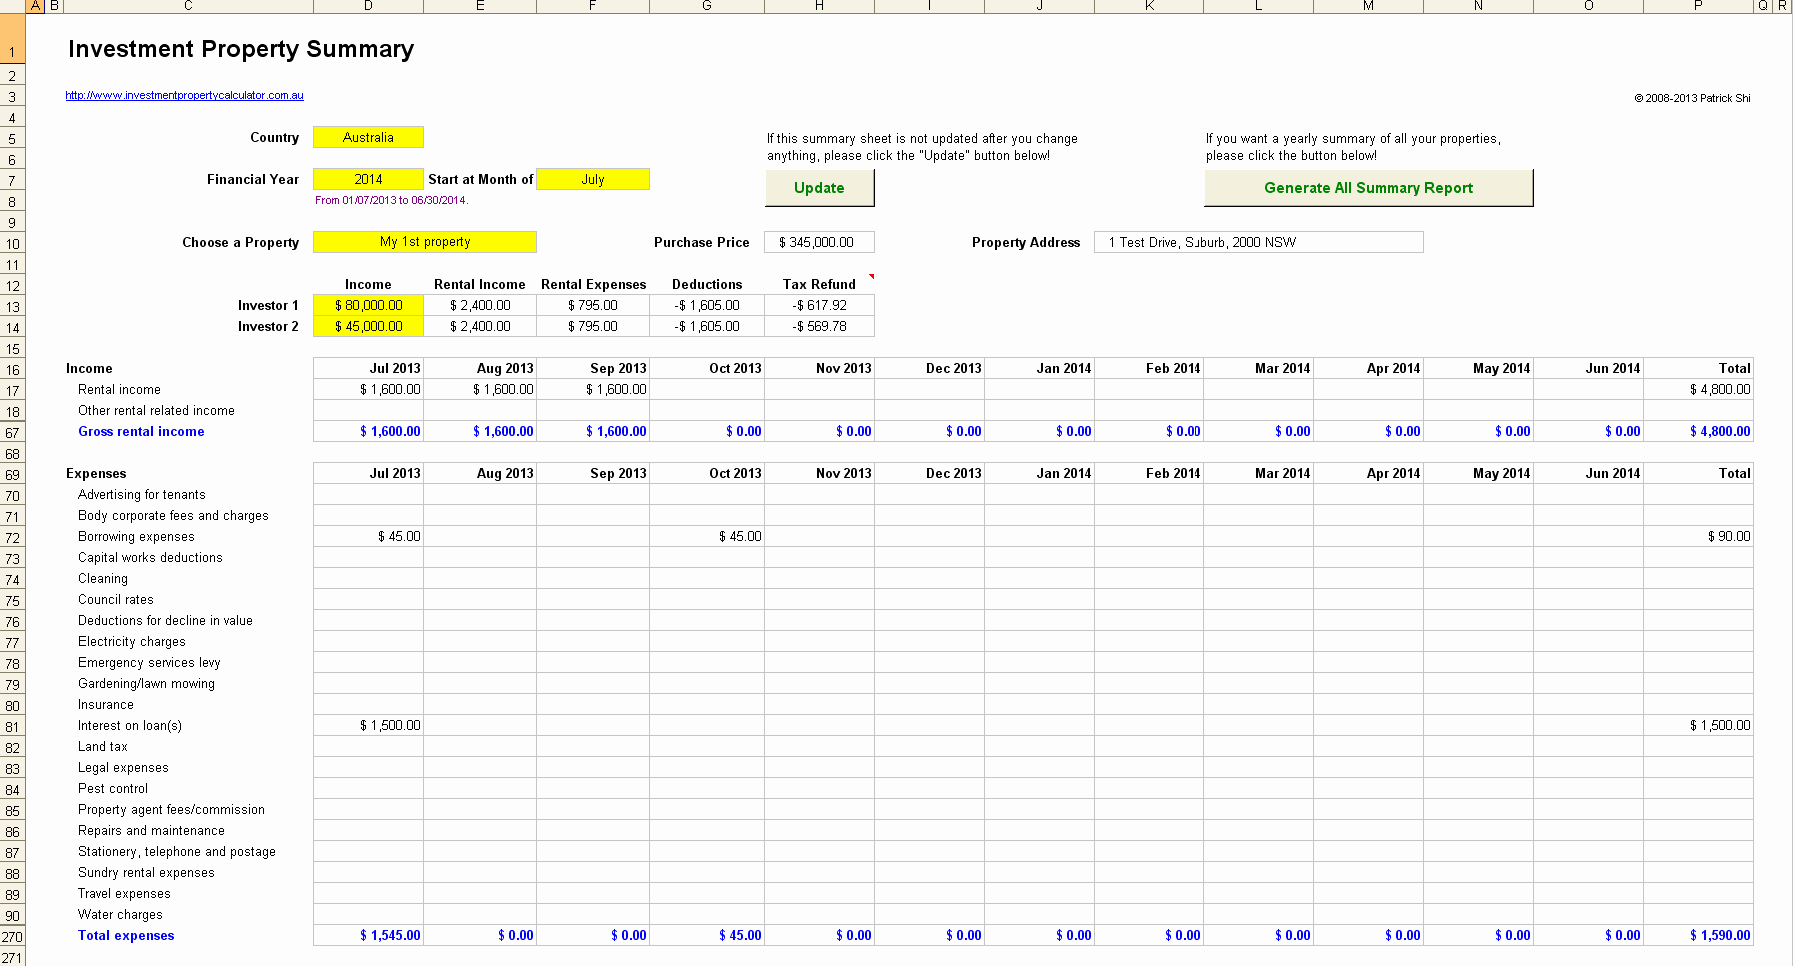 Keeping Track Of Expenses Spreadsheet With Keeping Track Of Expenses Spreadsheet – Theomega.ca